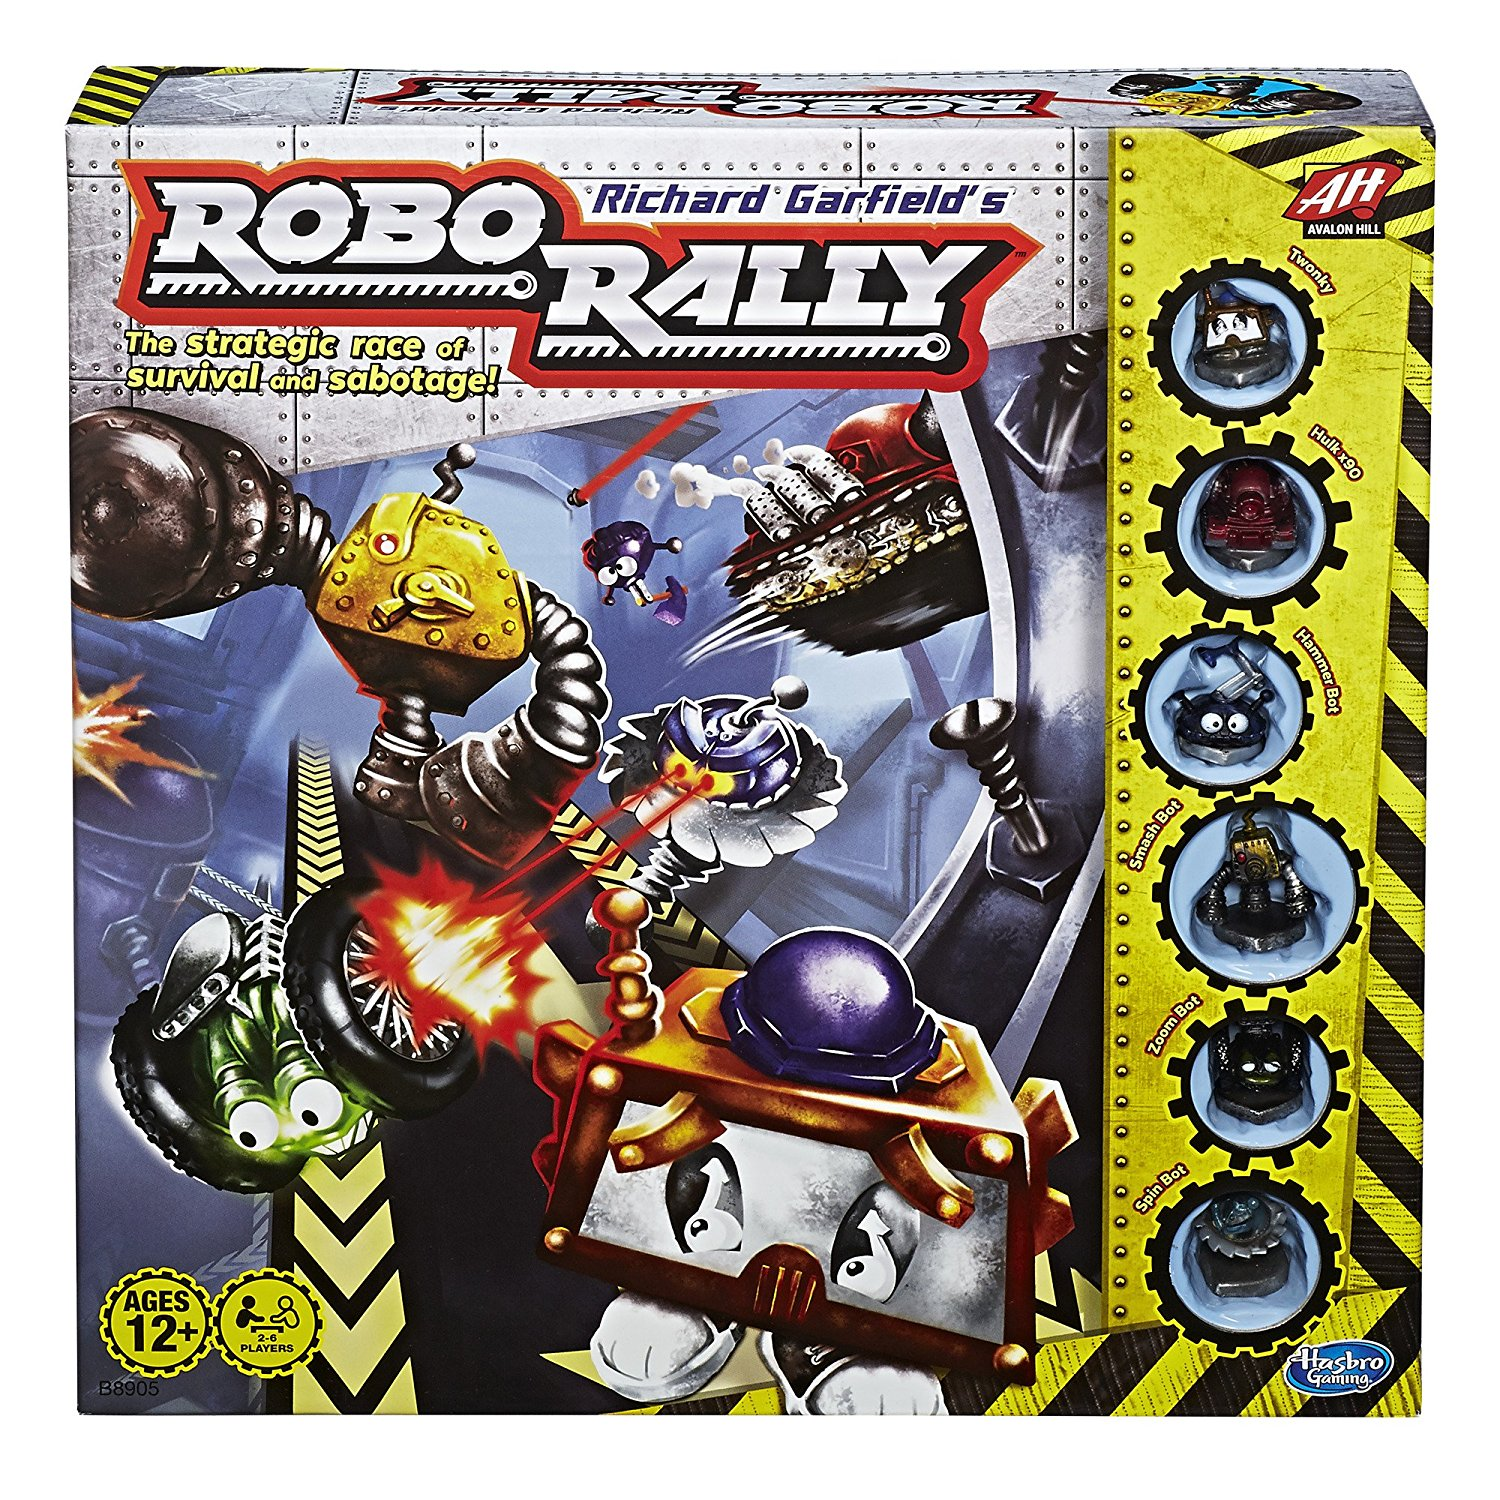 Classic Bot Programming Game Robo Rally Has Not Aged Well